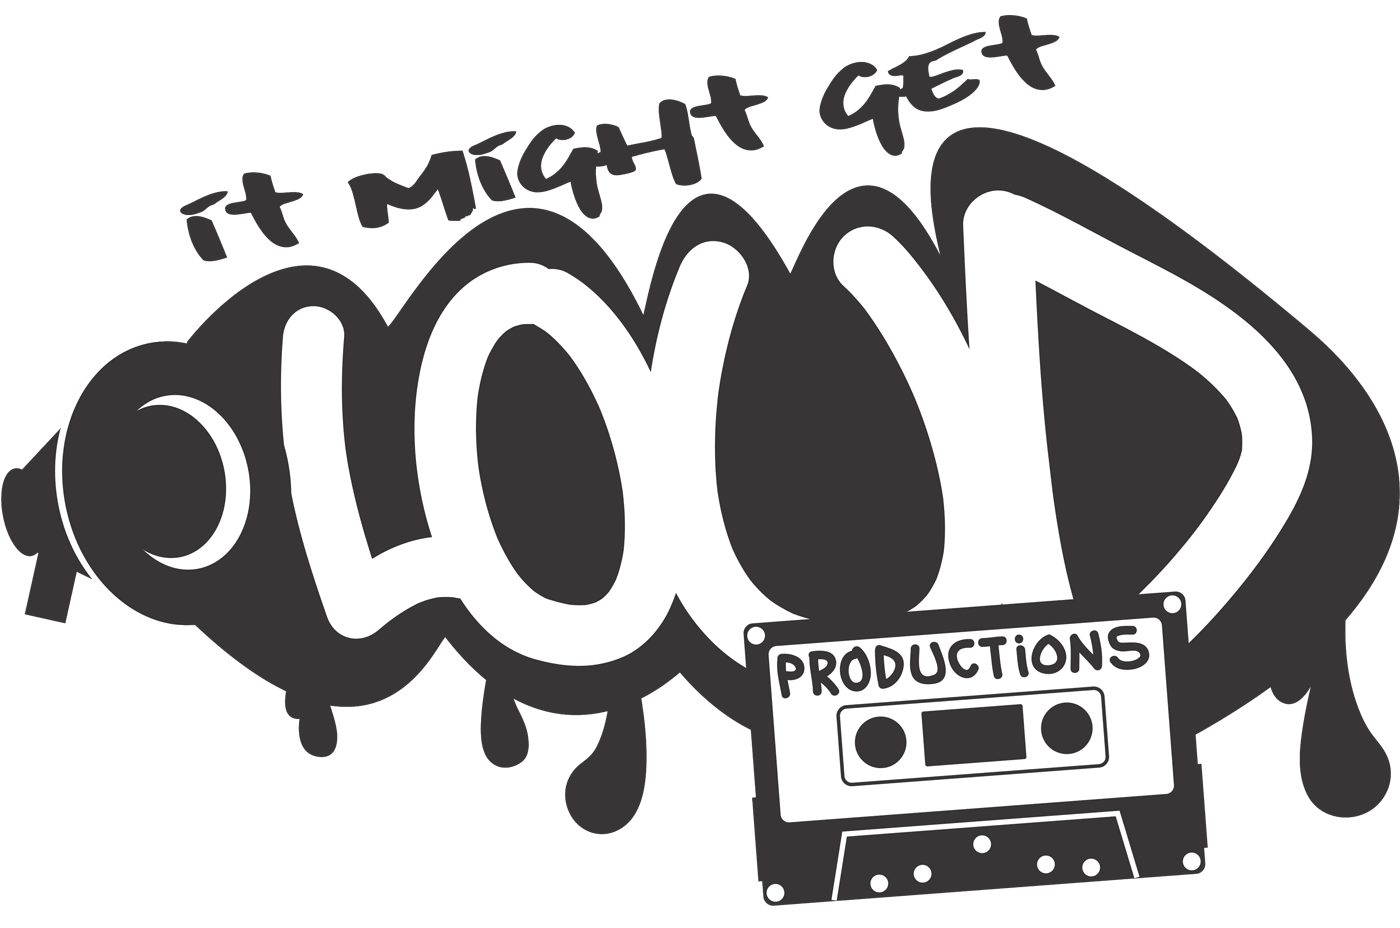 It Might Get Loud Productions